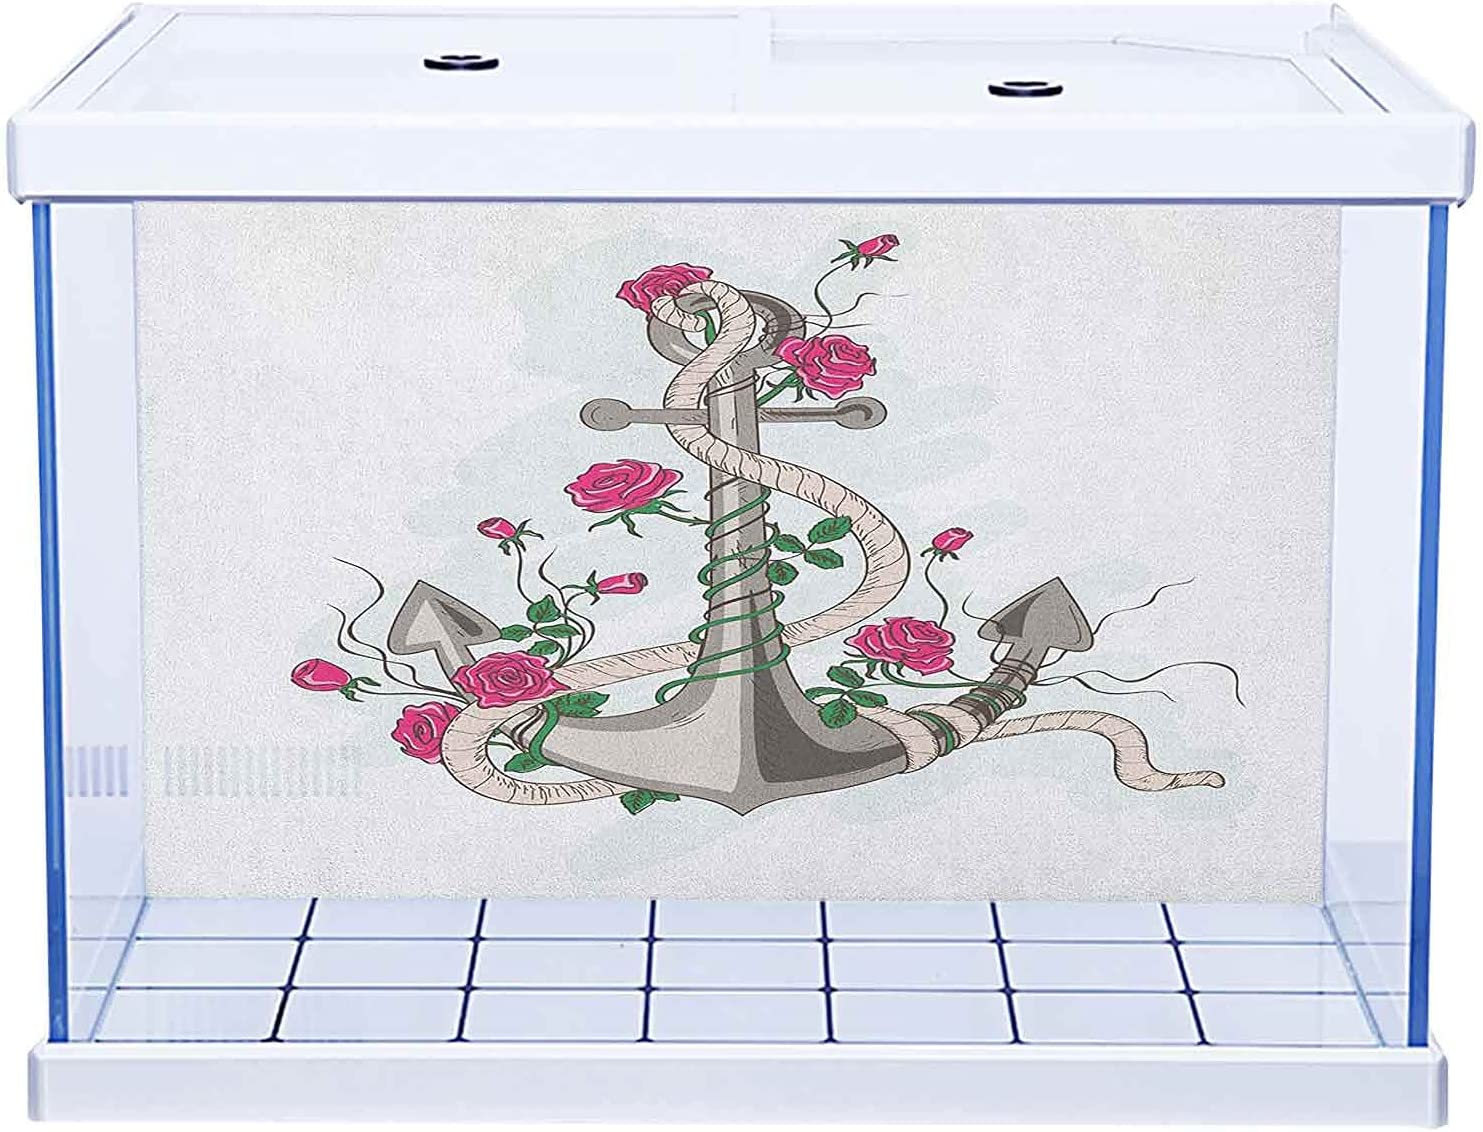 Aquarium Background Sticker Pattern Rose Easy-to-use with Grunge In stock Composition